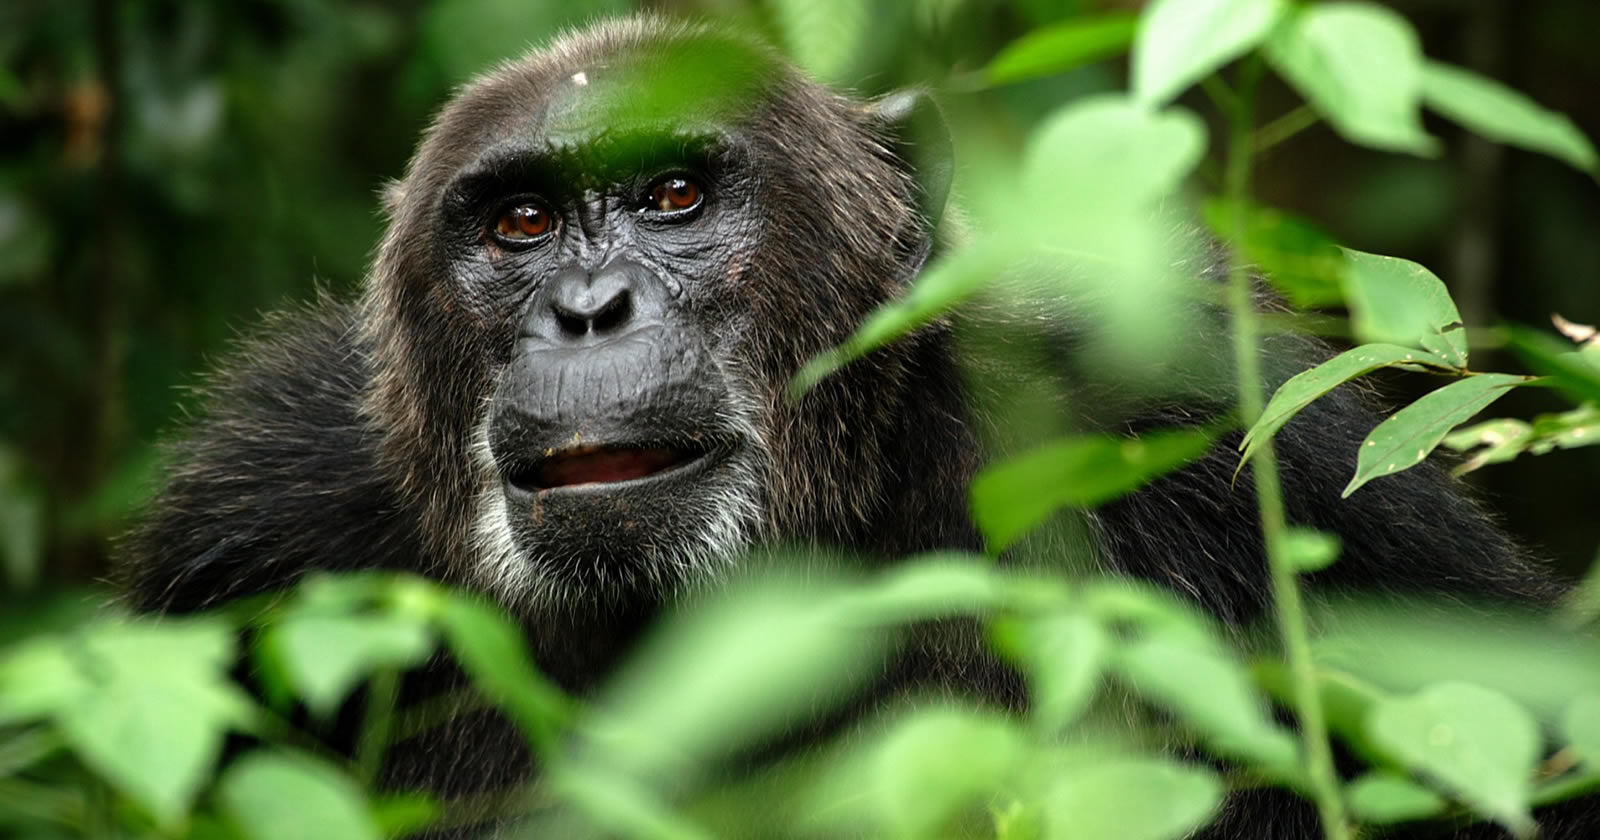 Age Limit for gorilla tracking